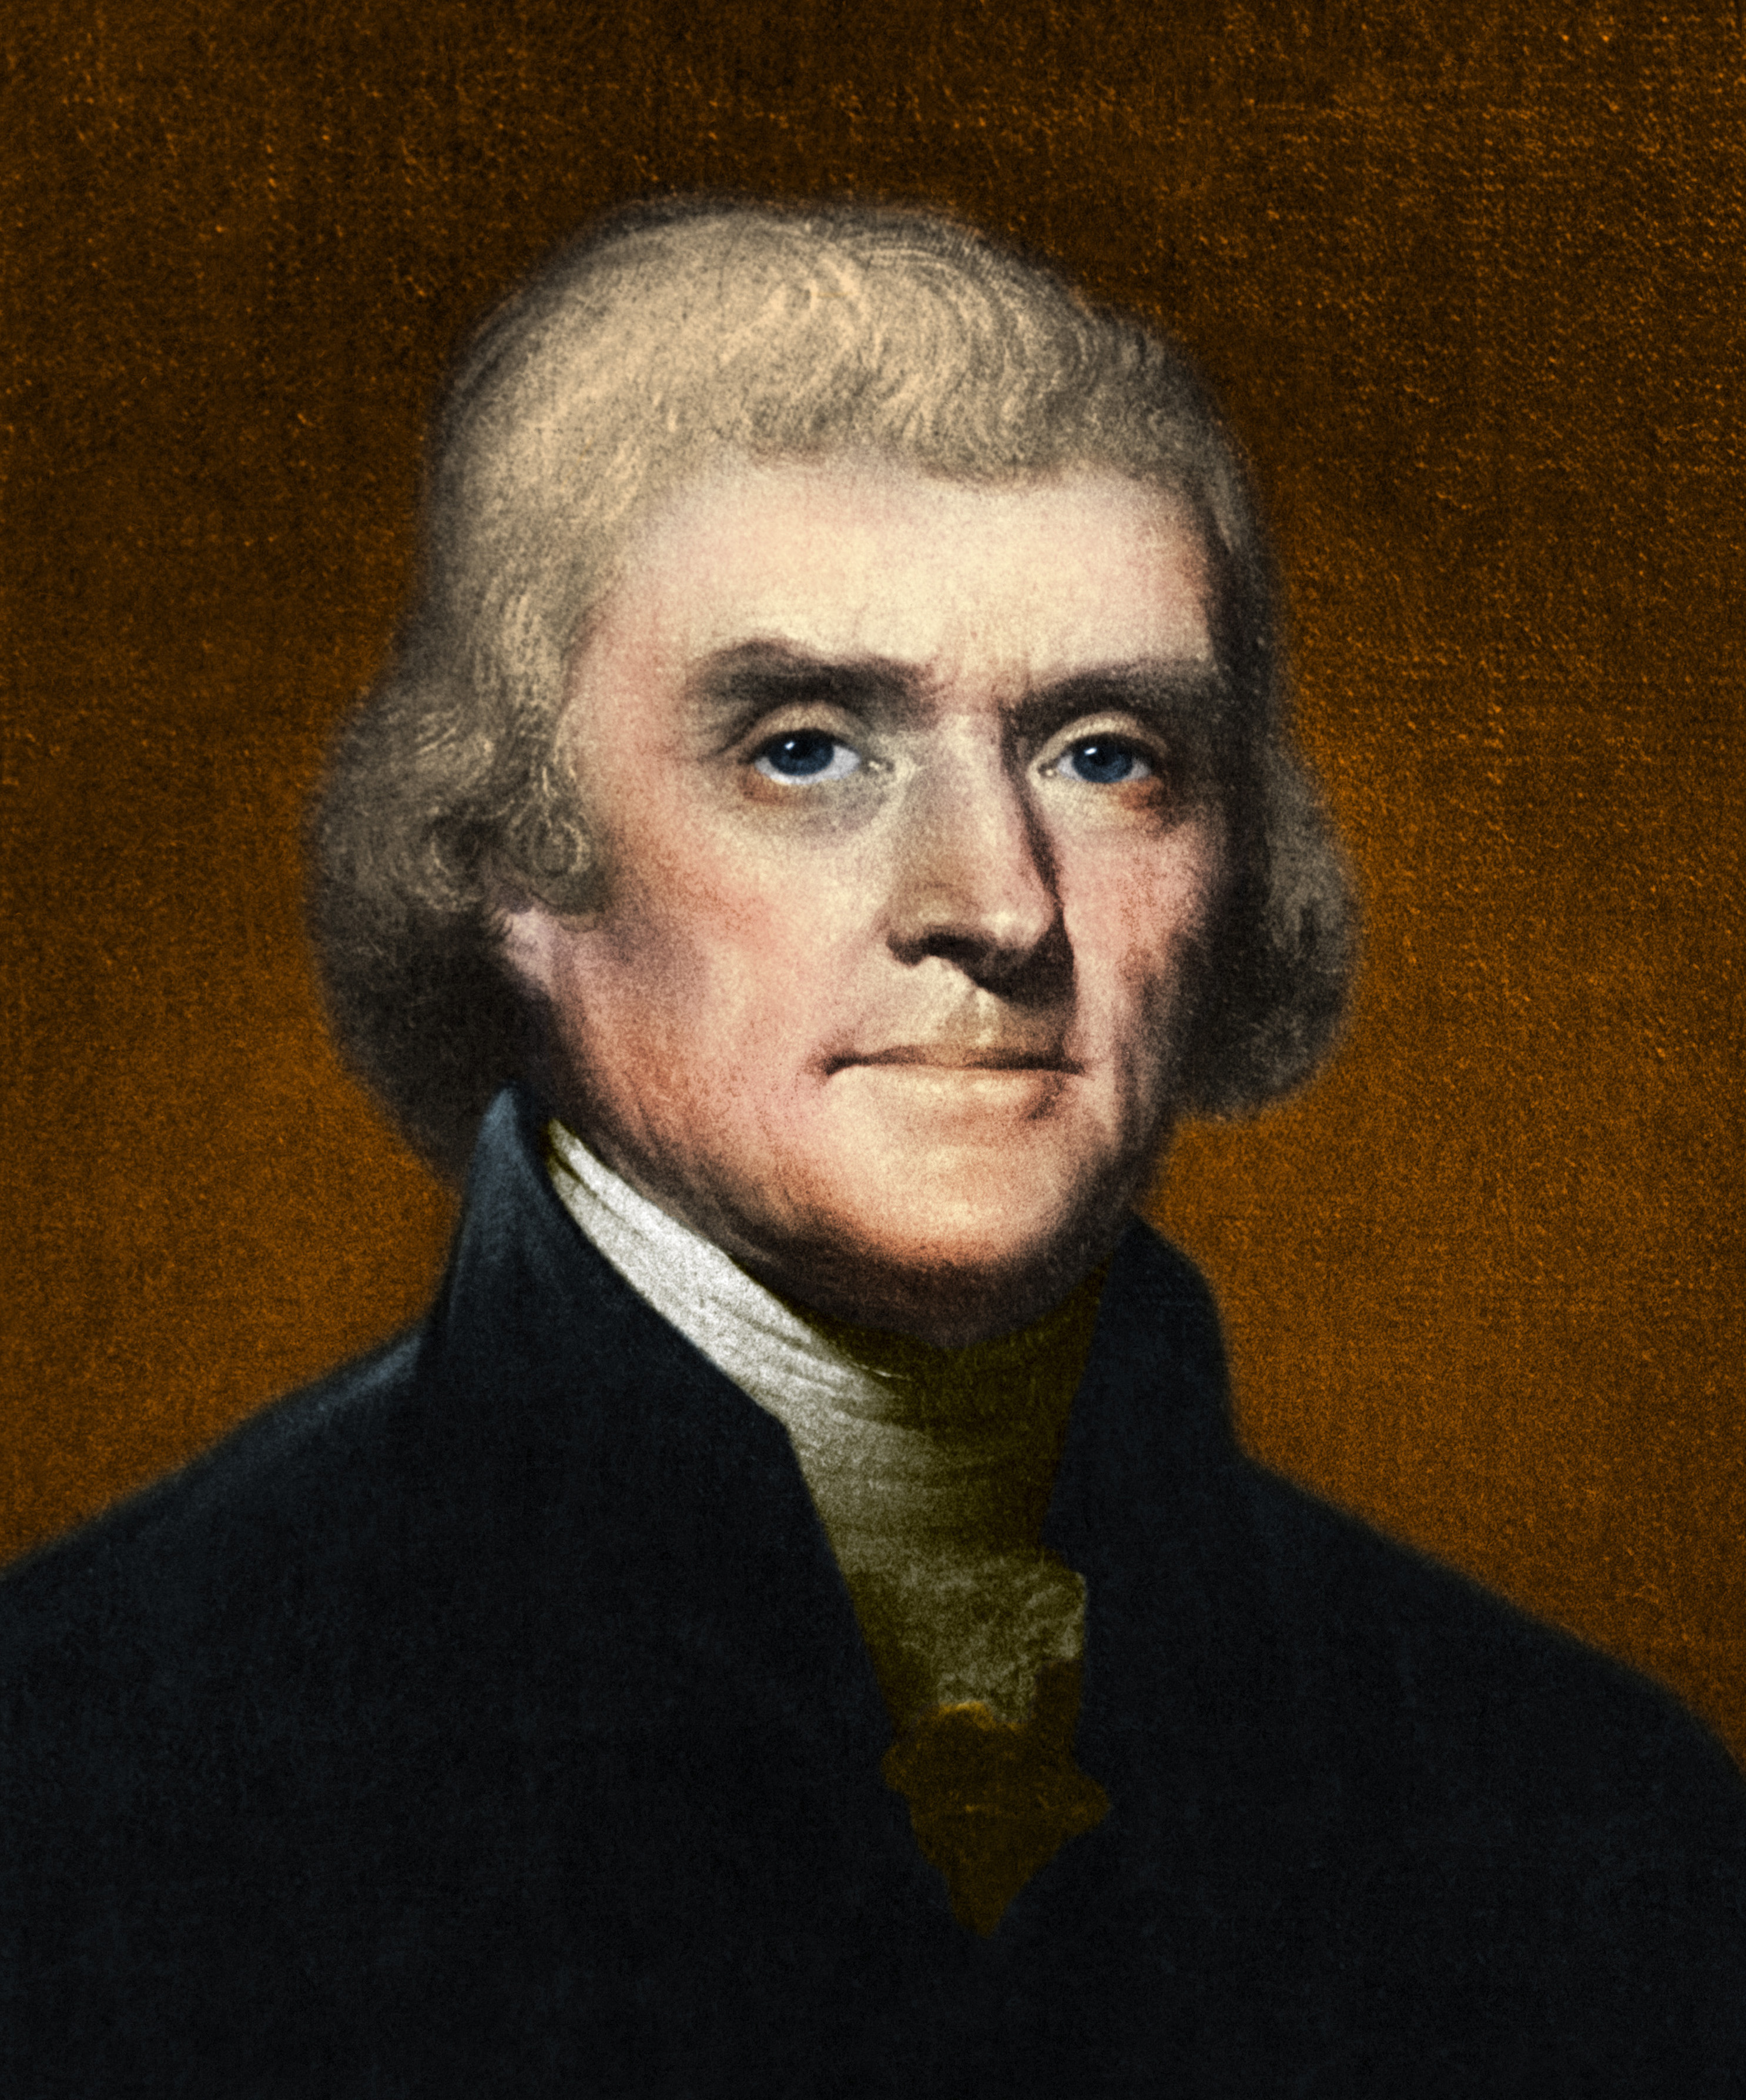 Thomas Jefferson, 3rd U.S. President